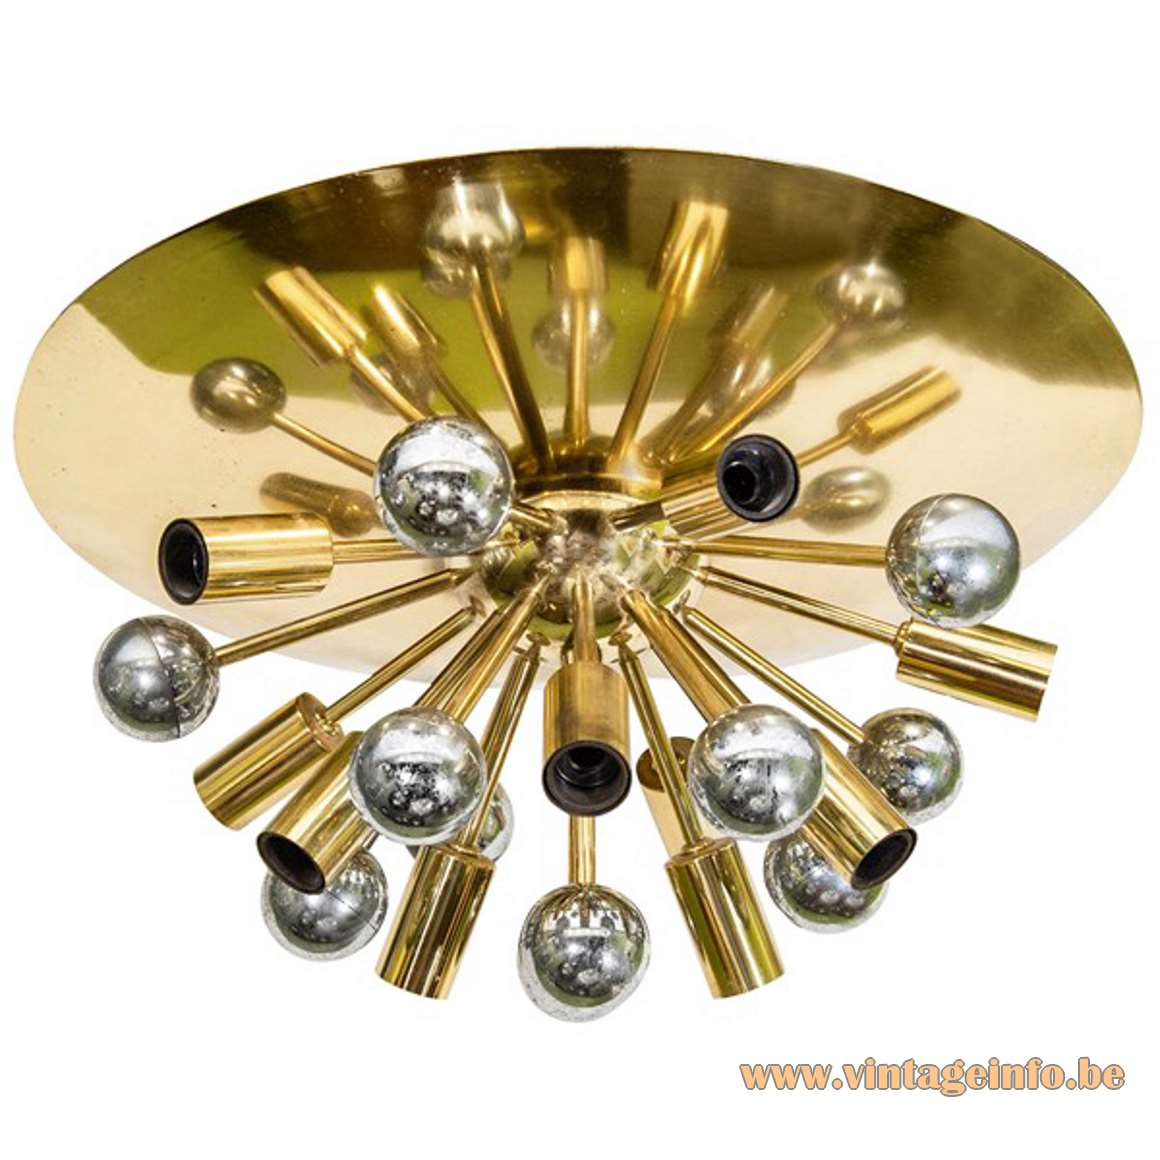 S.A. Boulanger Brass Sputnik Flush Mount 10 light bulbs 1960s 1970s Belgium round wall lamp MCM